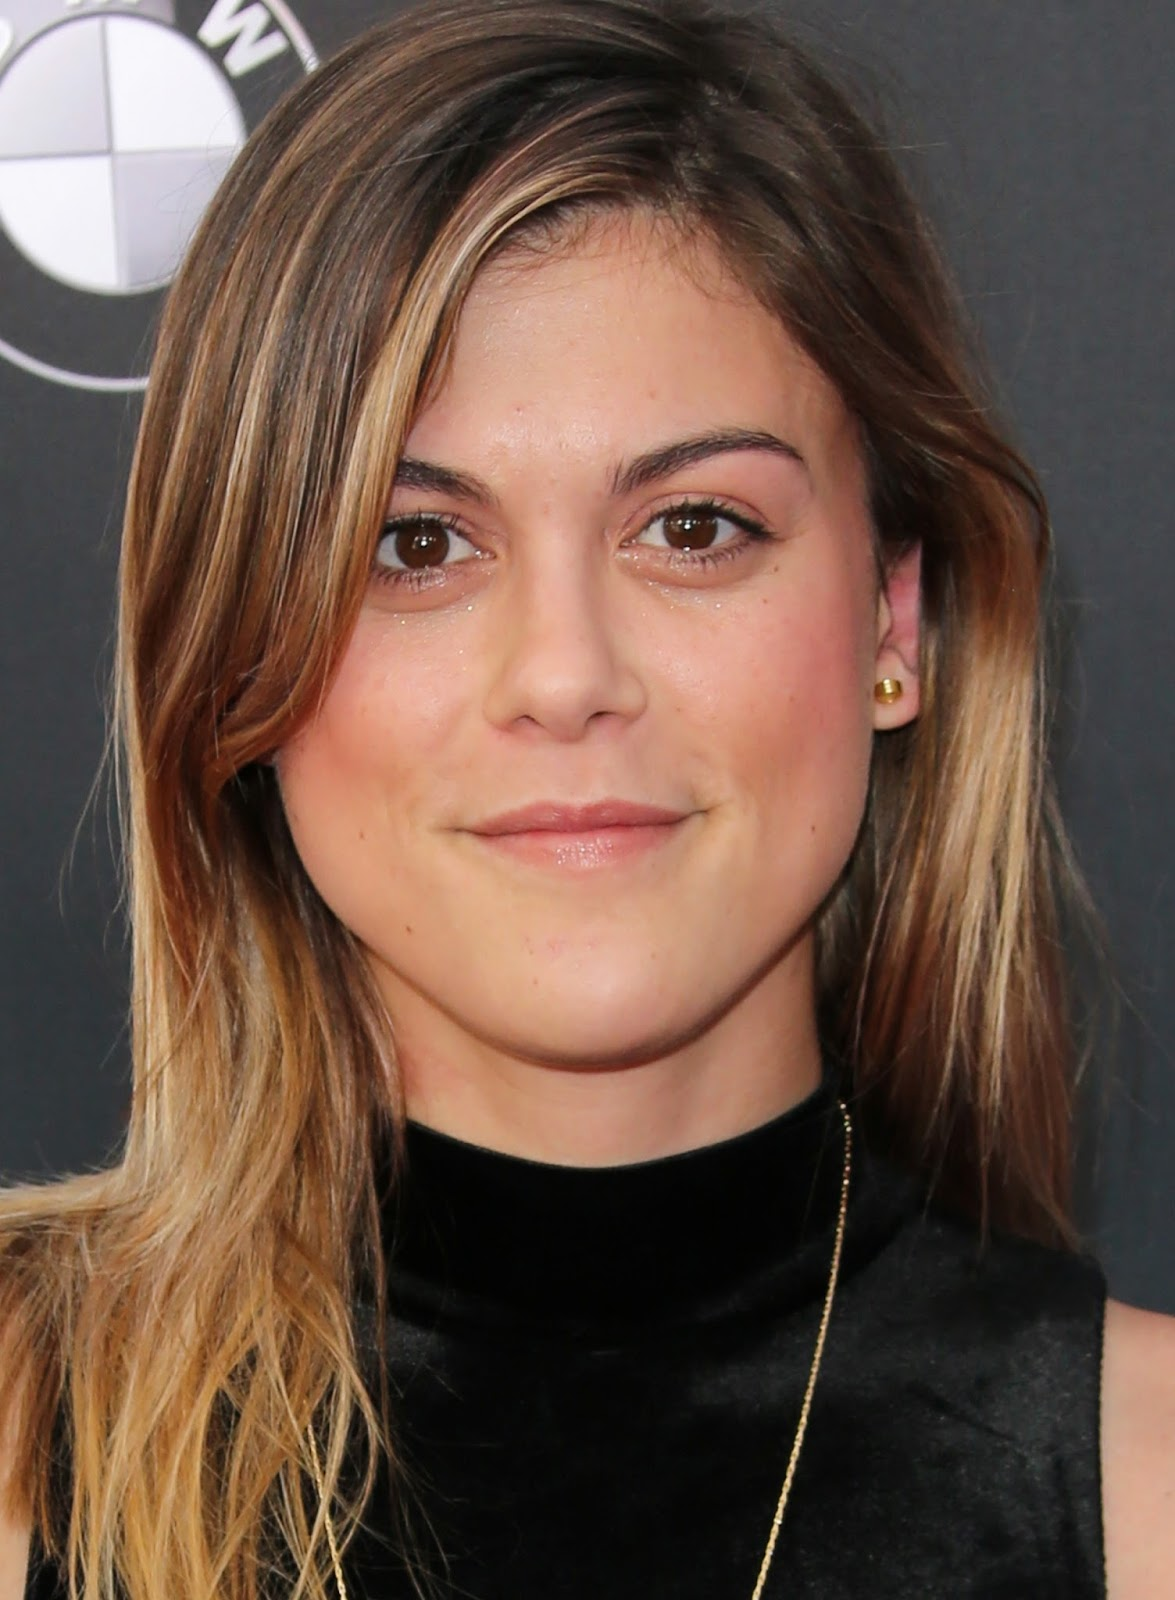 Celebrites Lindsey Shaw nude (88 photo), Topless, Paparazzi, Twitter, braless 2020